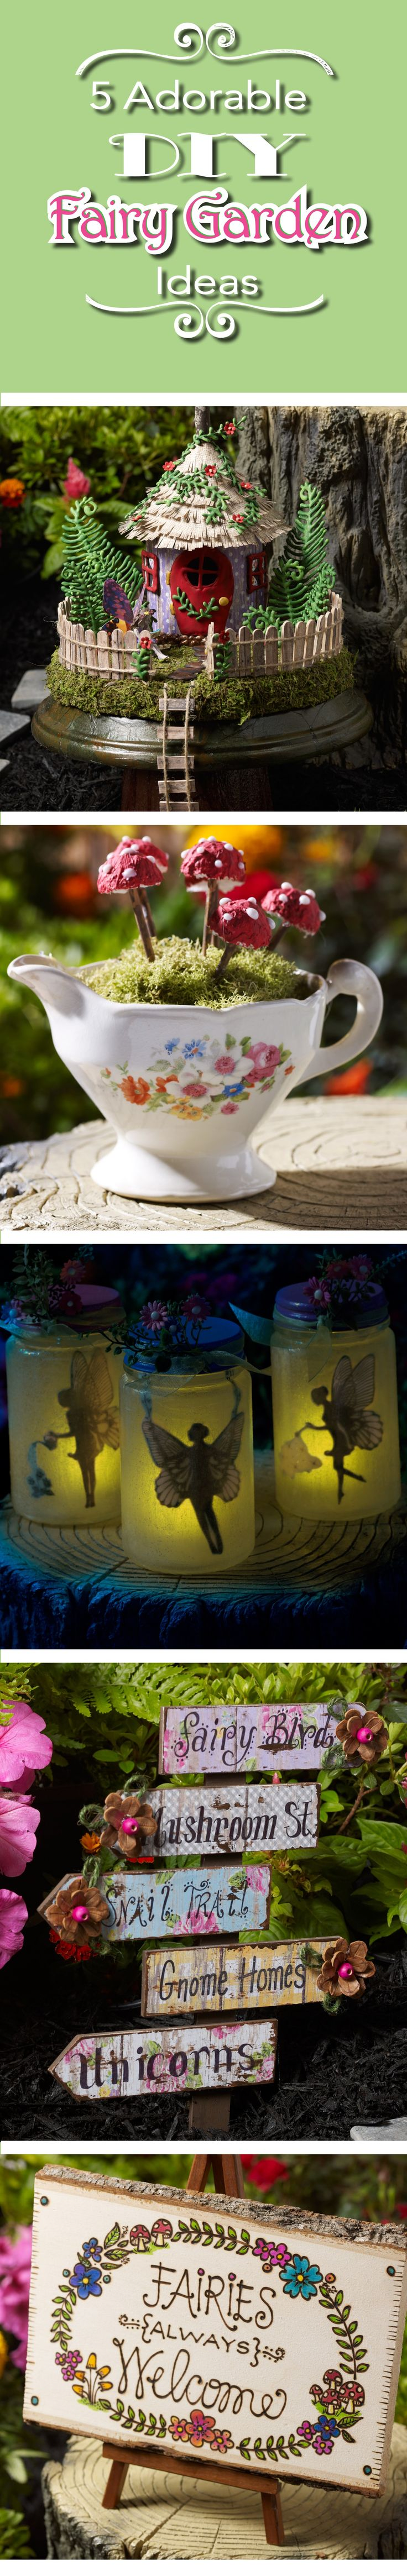 Absolute cutest fairy garden DIY ideas and tutorial! So in love with the teacup fairies and mason jar fairy light craft - can't wait to make my own!